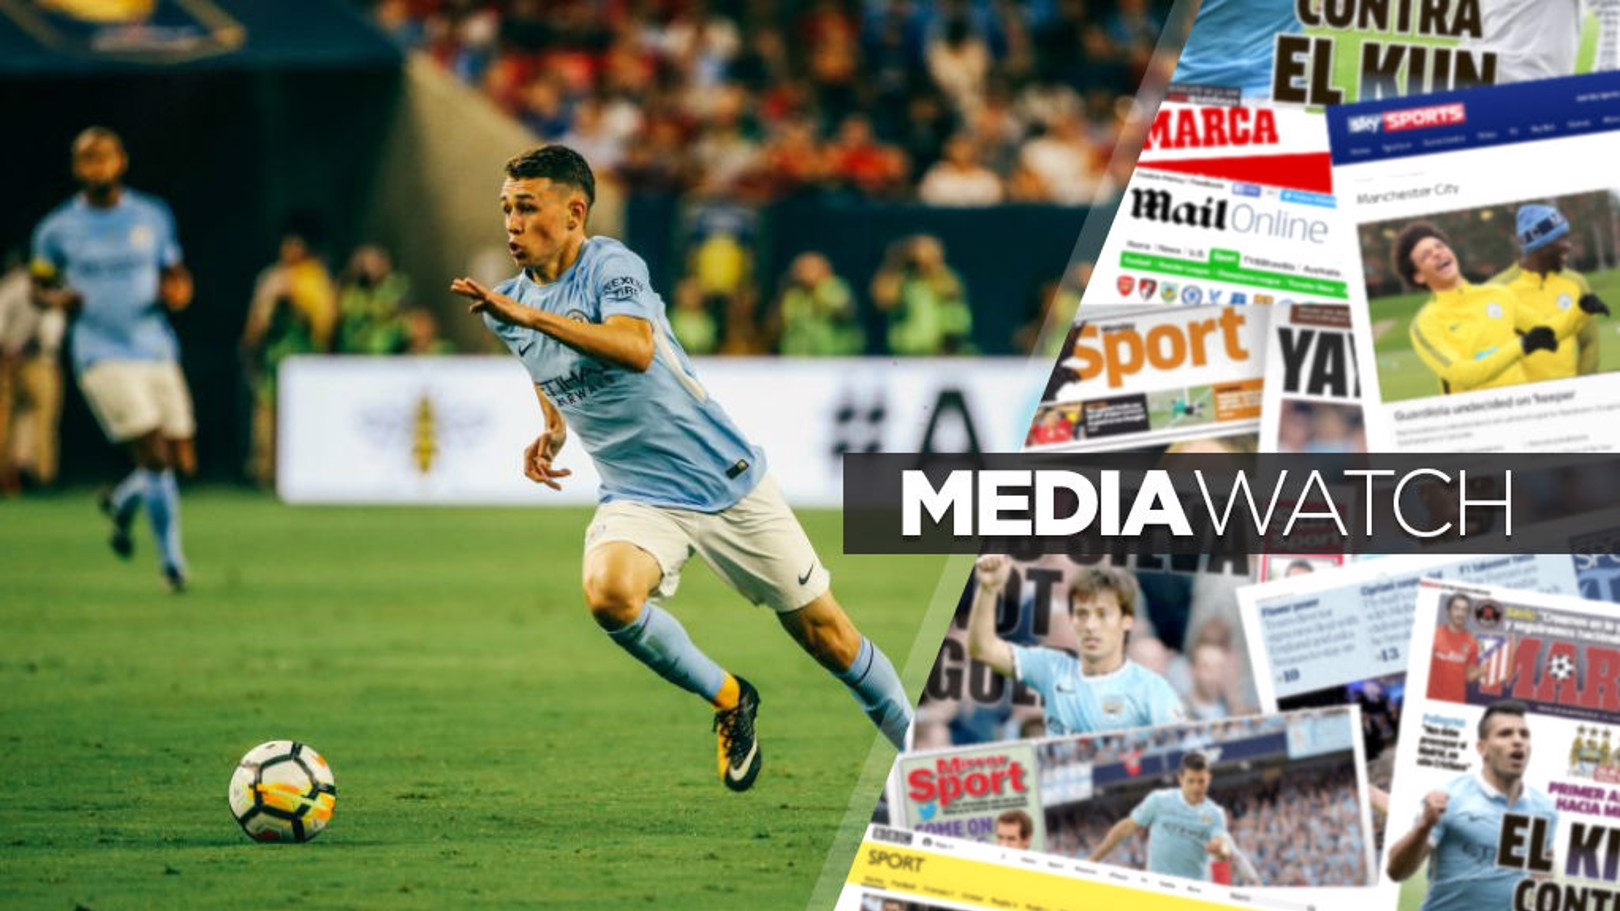 YOUNG GUN: The press have profiled Phil Foden's rise.